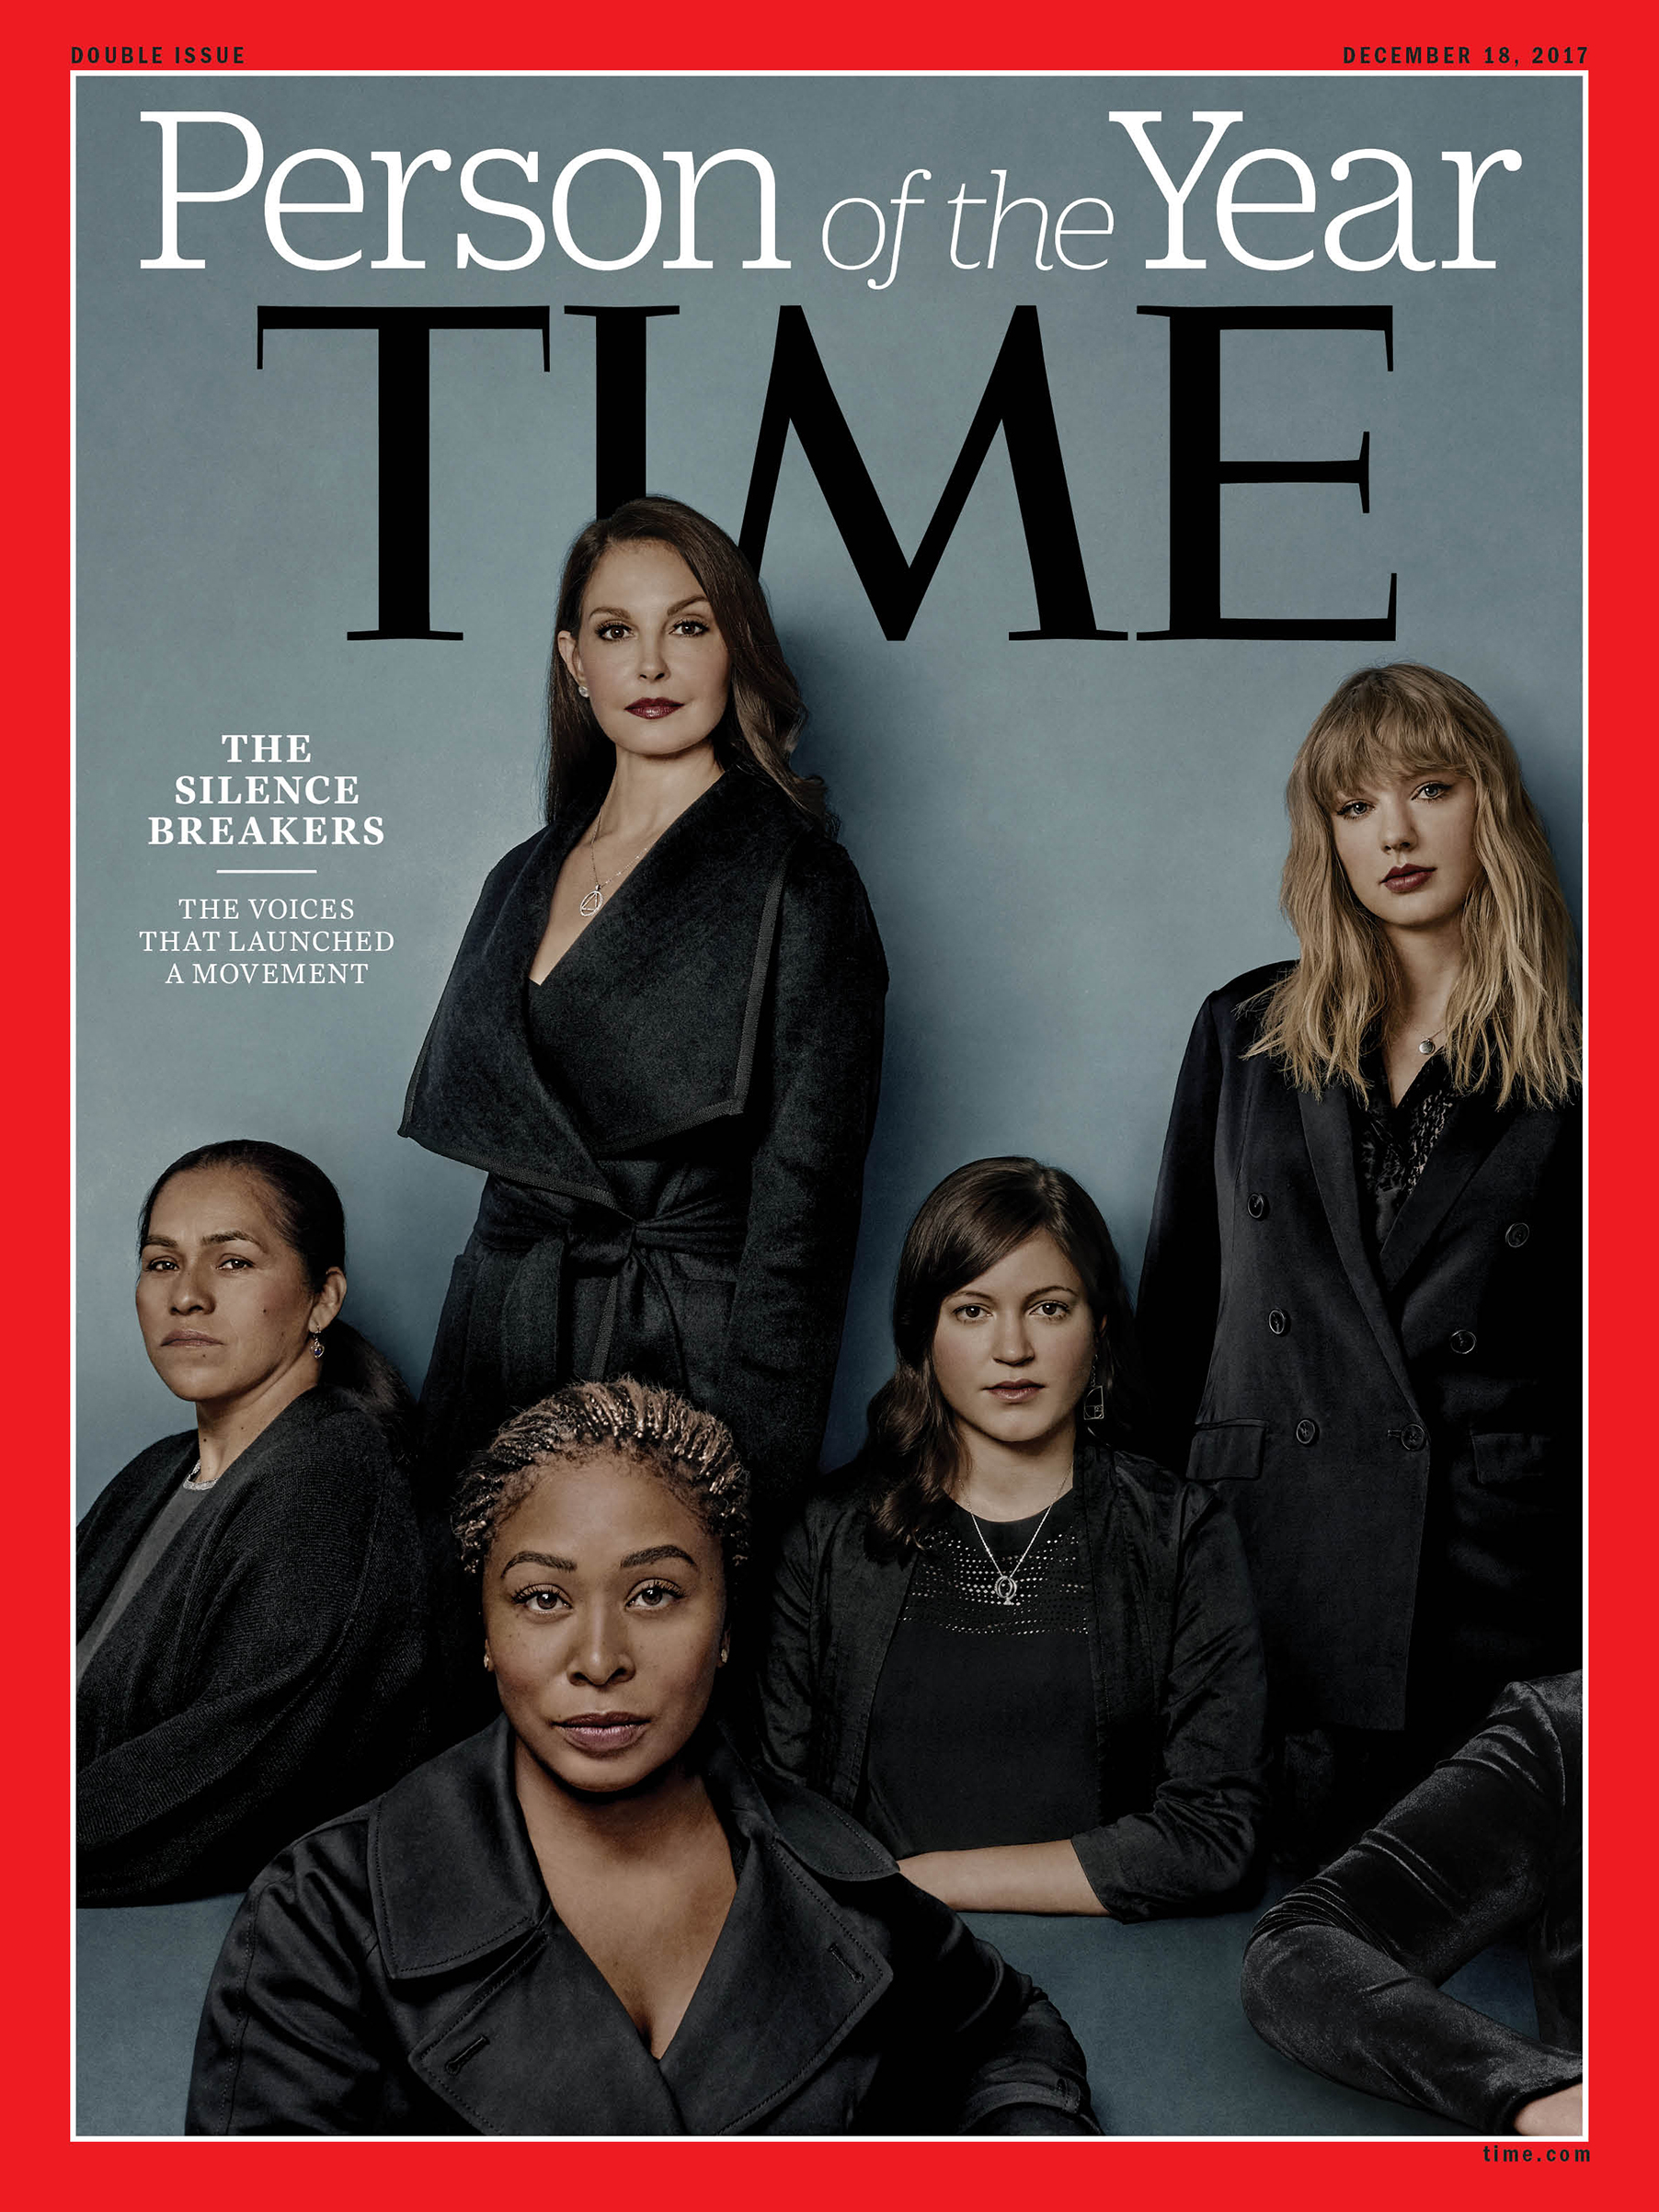 Time Person of the Year Cover - Silence Breakers